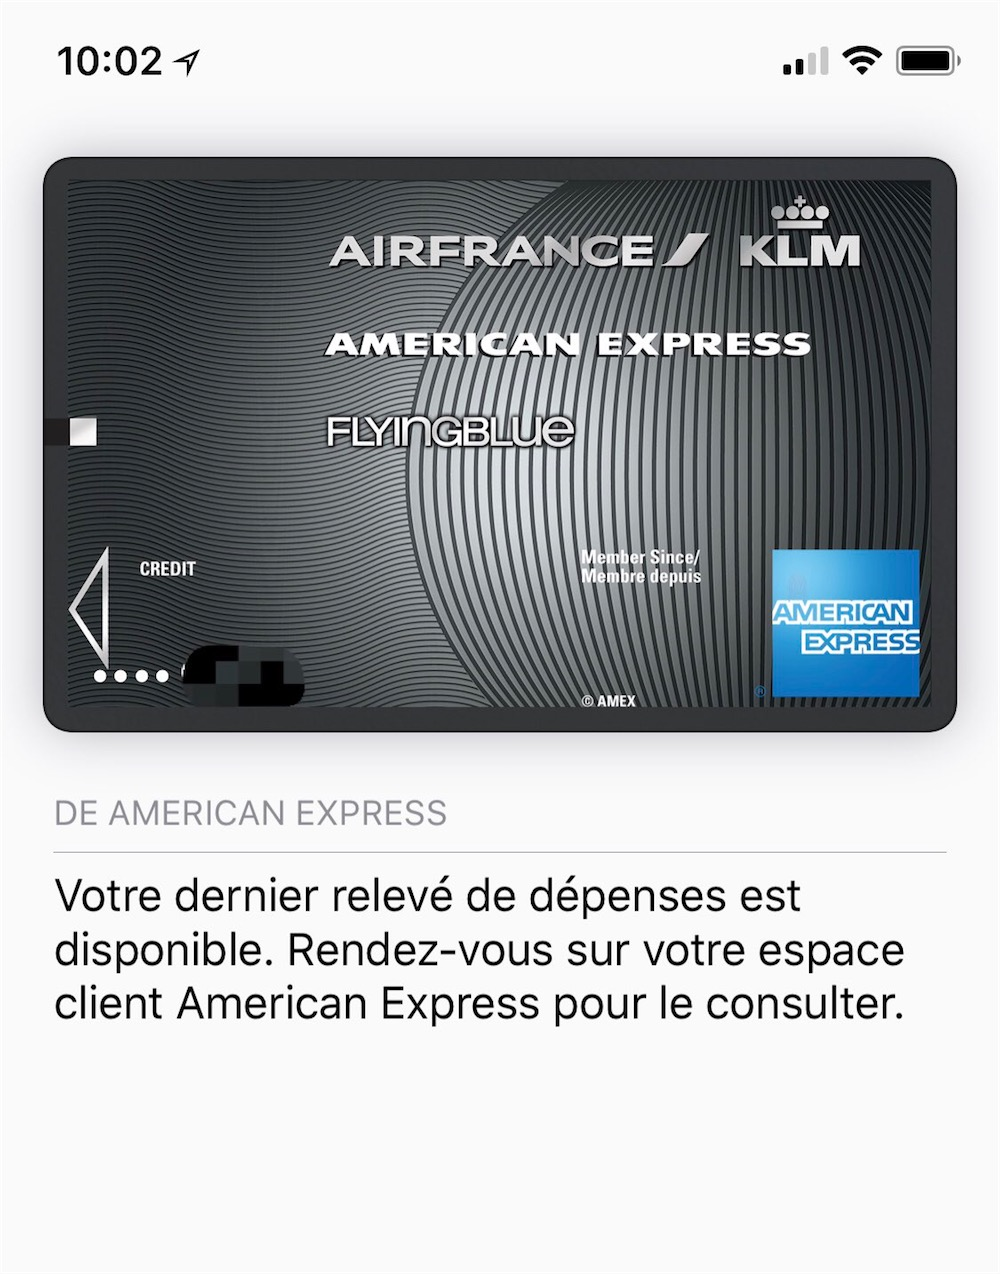 Magasin Qui Accepte Carte American Express.Les Cartes American Express Sont Compatibles Apple Pay